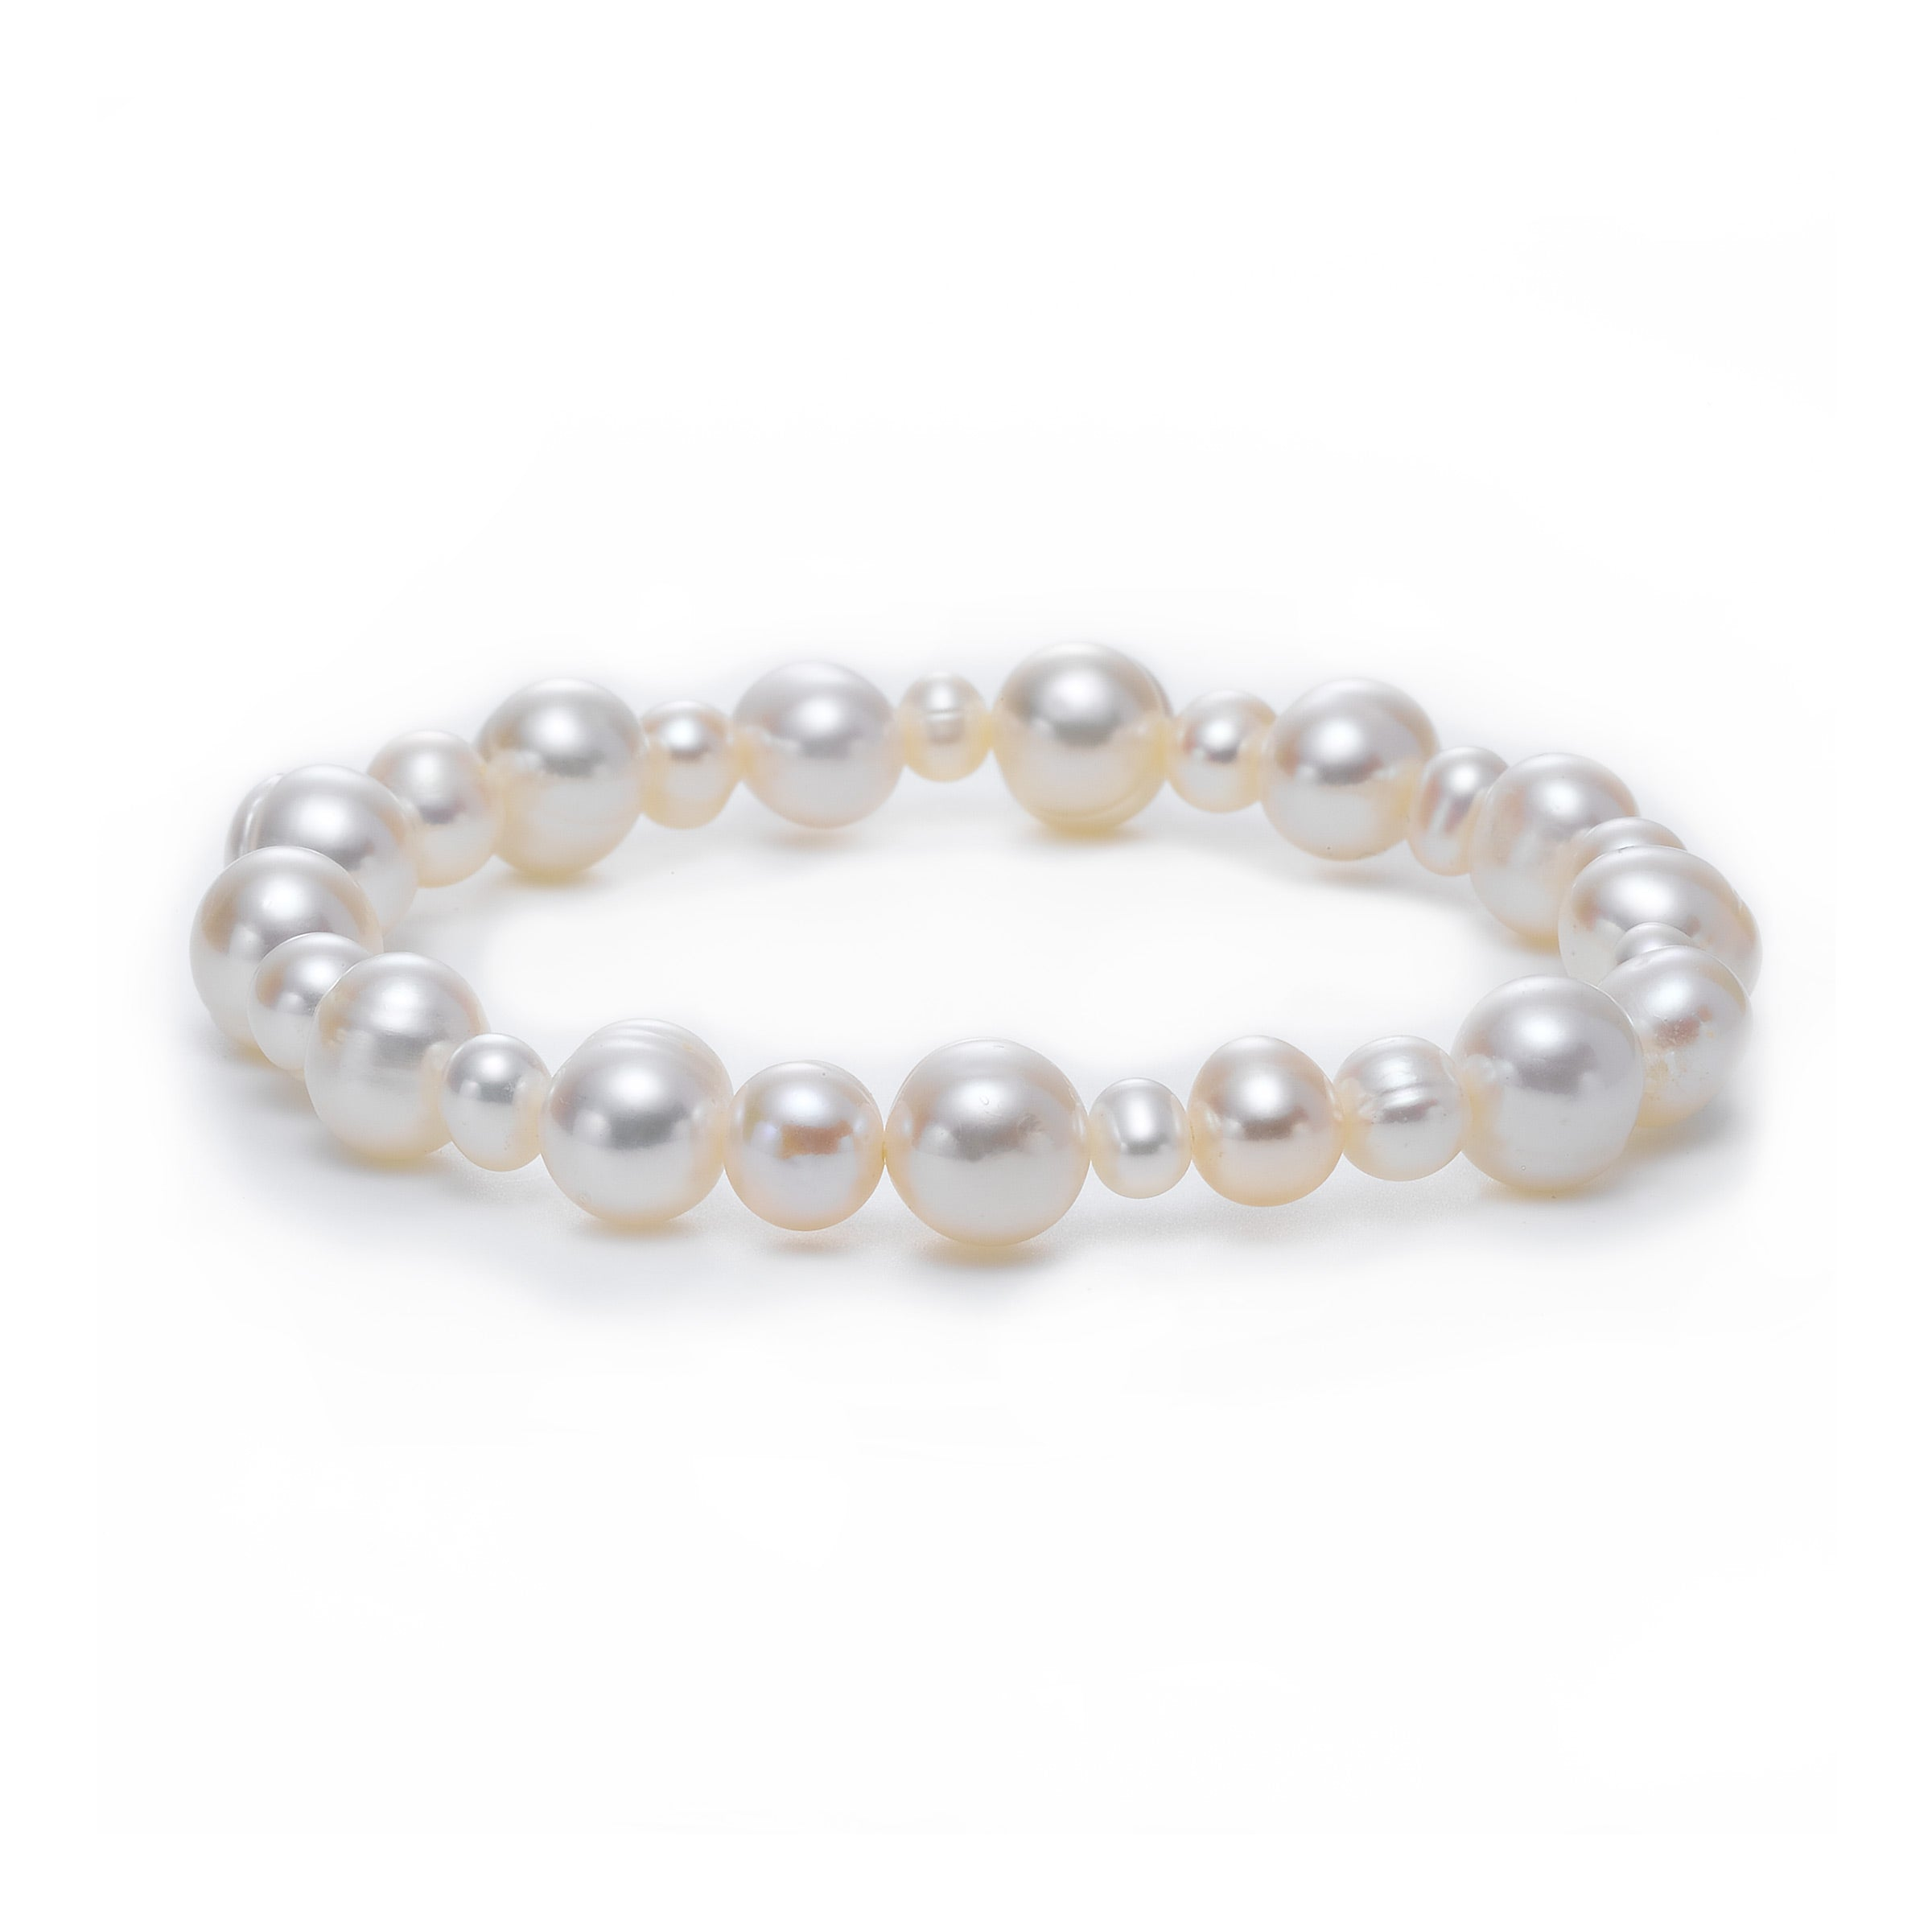 White Freshwater Cultured Pearl Stretch Bracelet